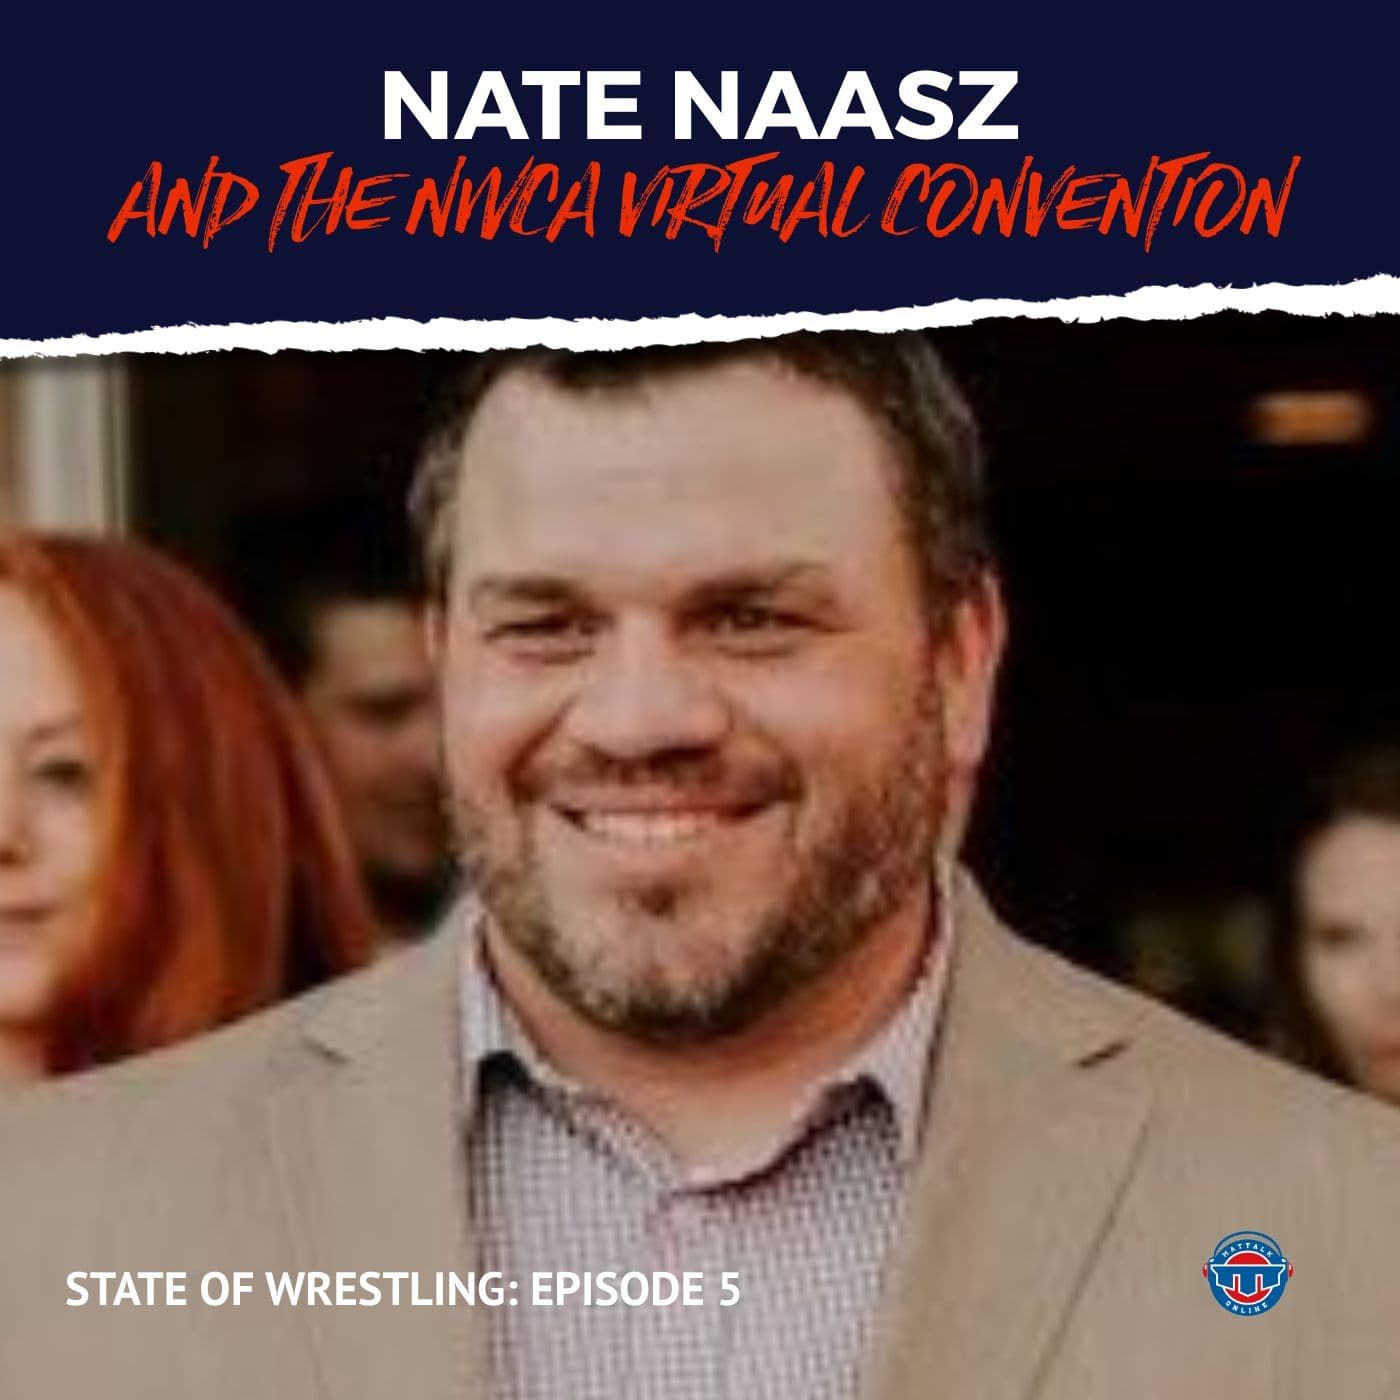 Nate Naasz breaks down the NWCA's upcoming virtual convention